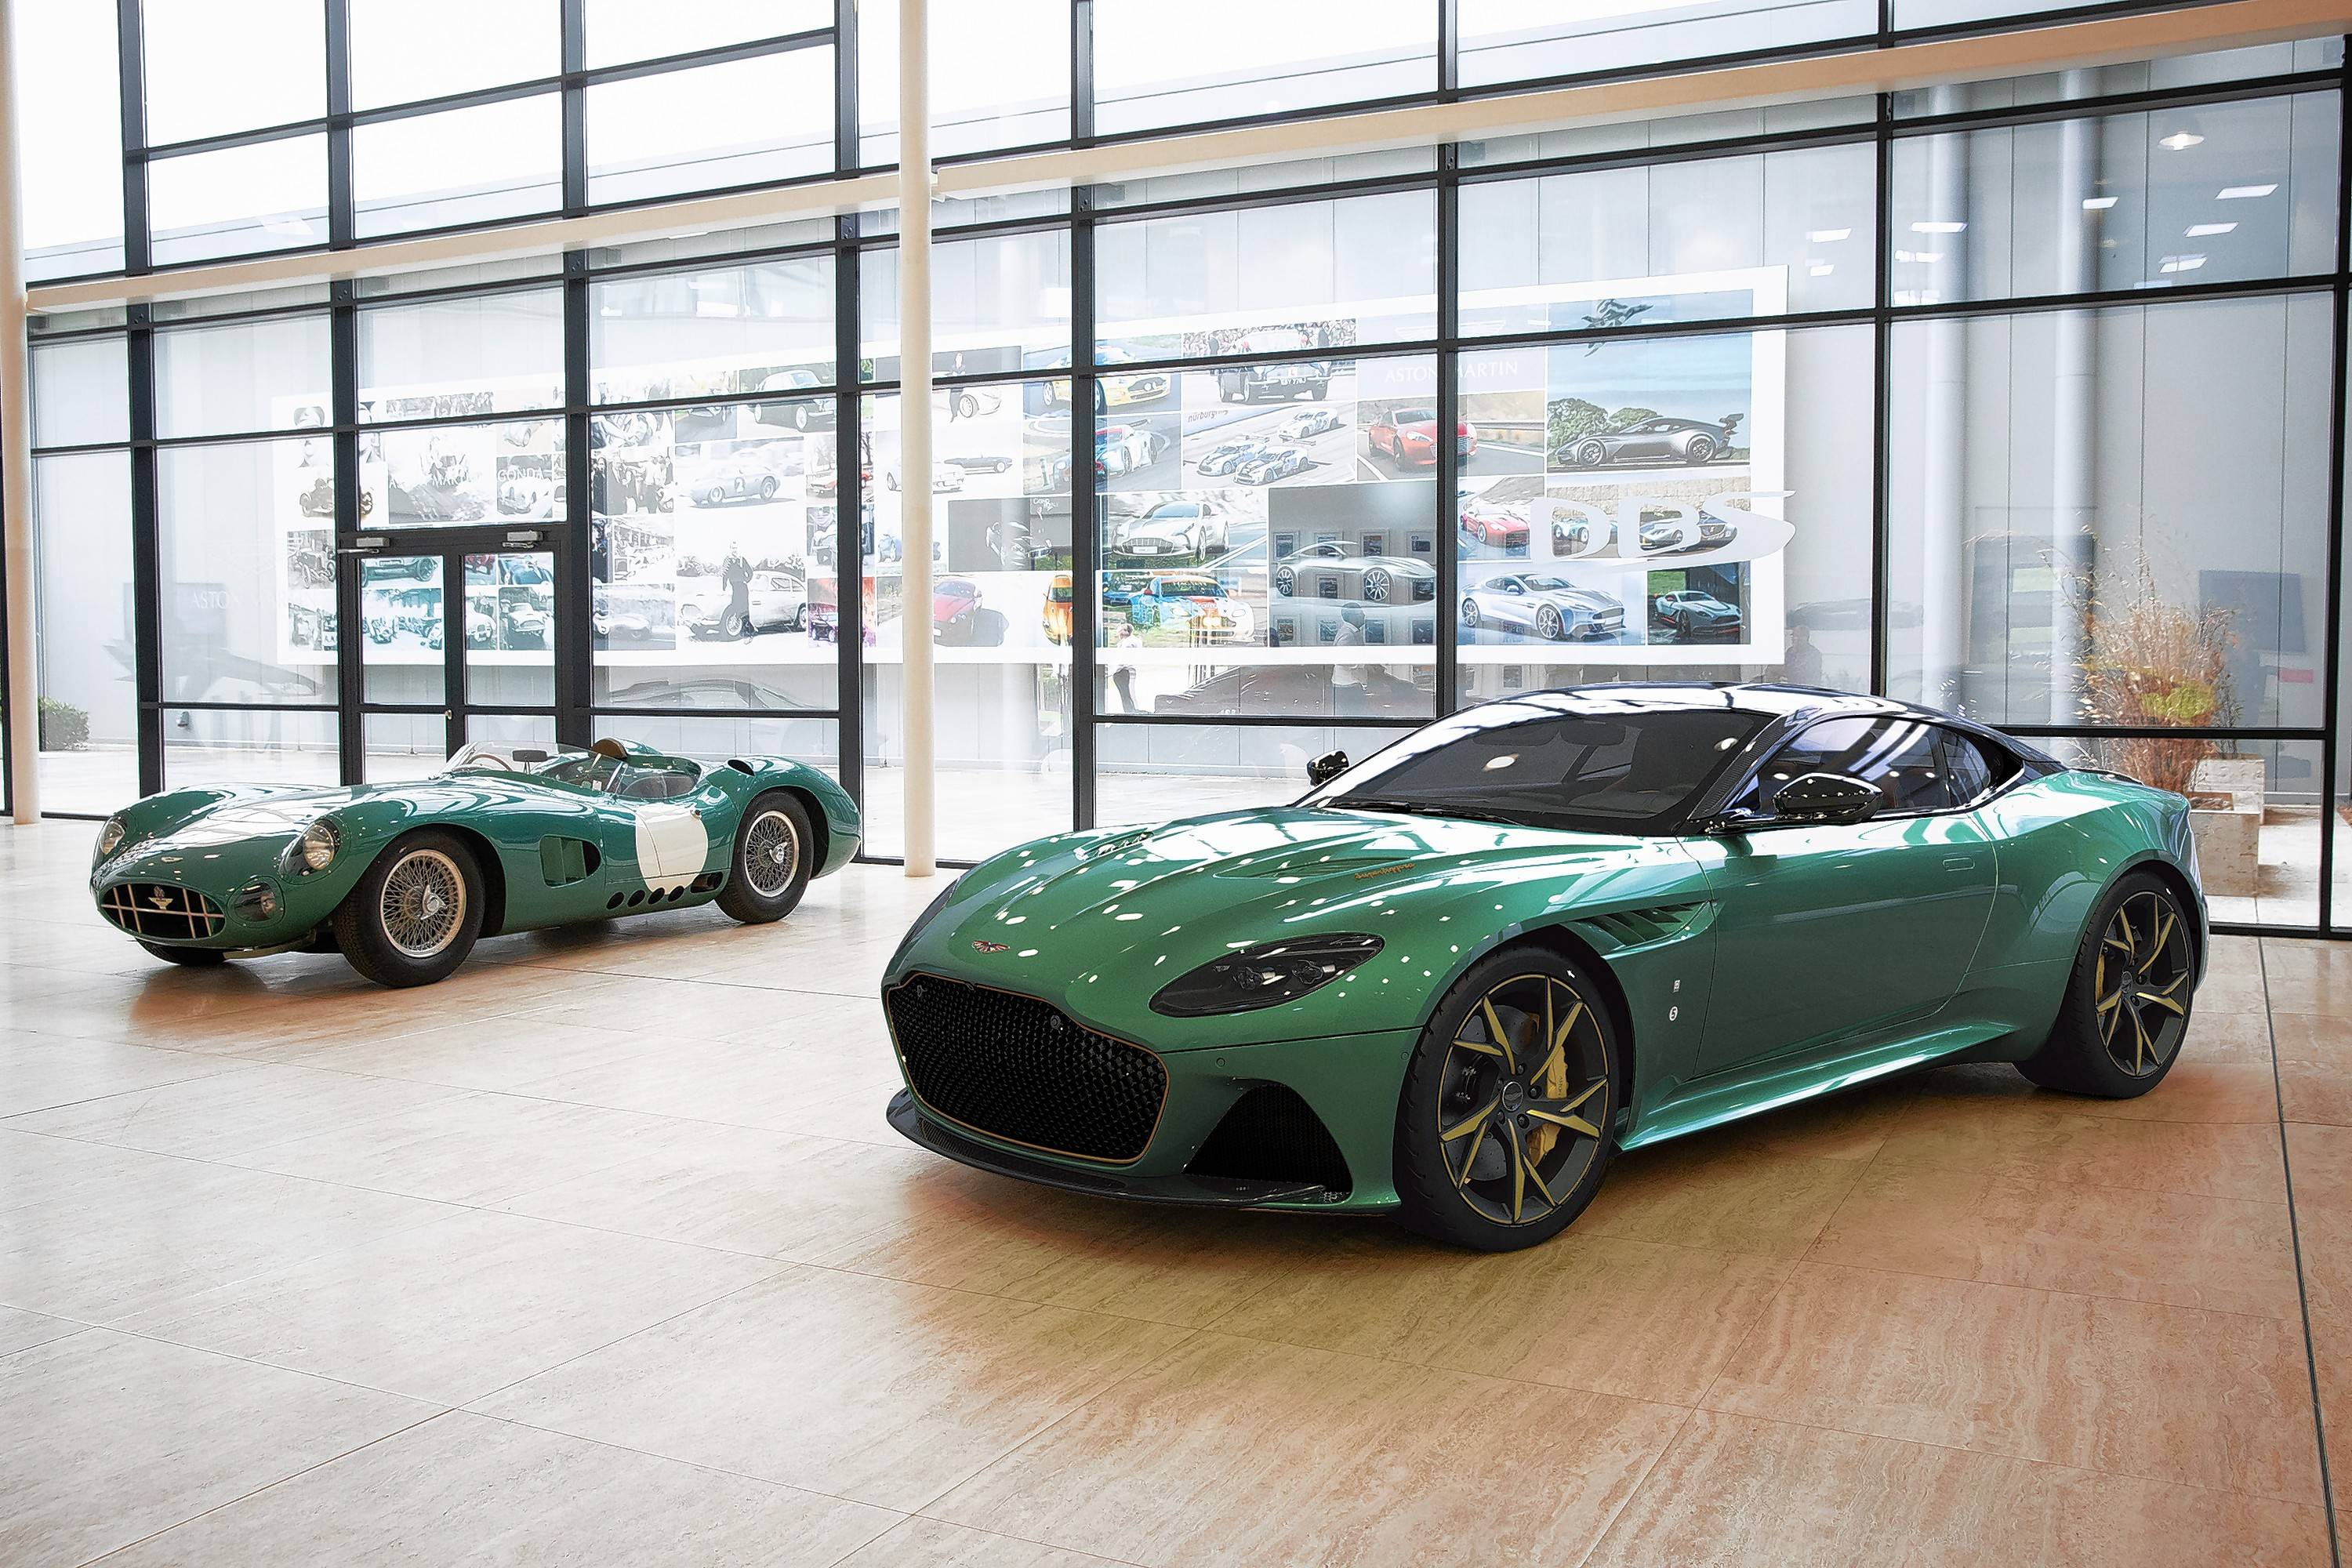 The Aston Martin DBS 59, foreground, is inspired by the Aston Martin DBR1 race car, in back, of which only five were built between 1956 and 1959.